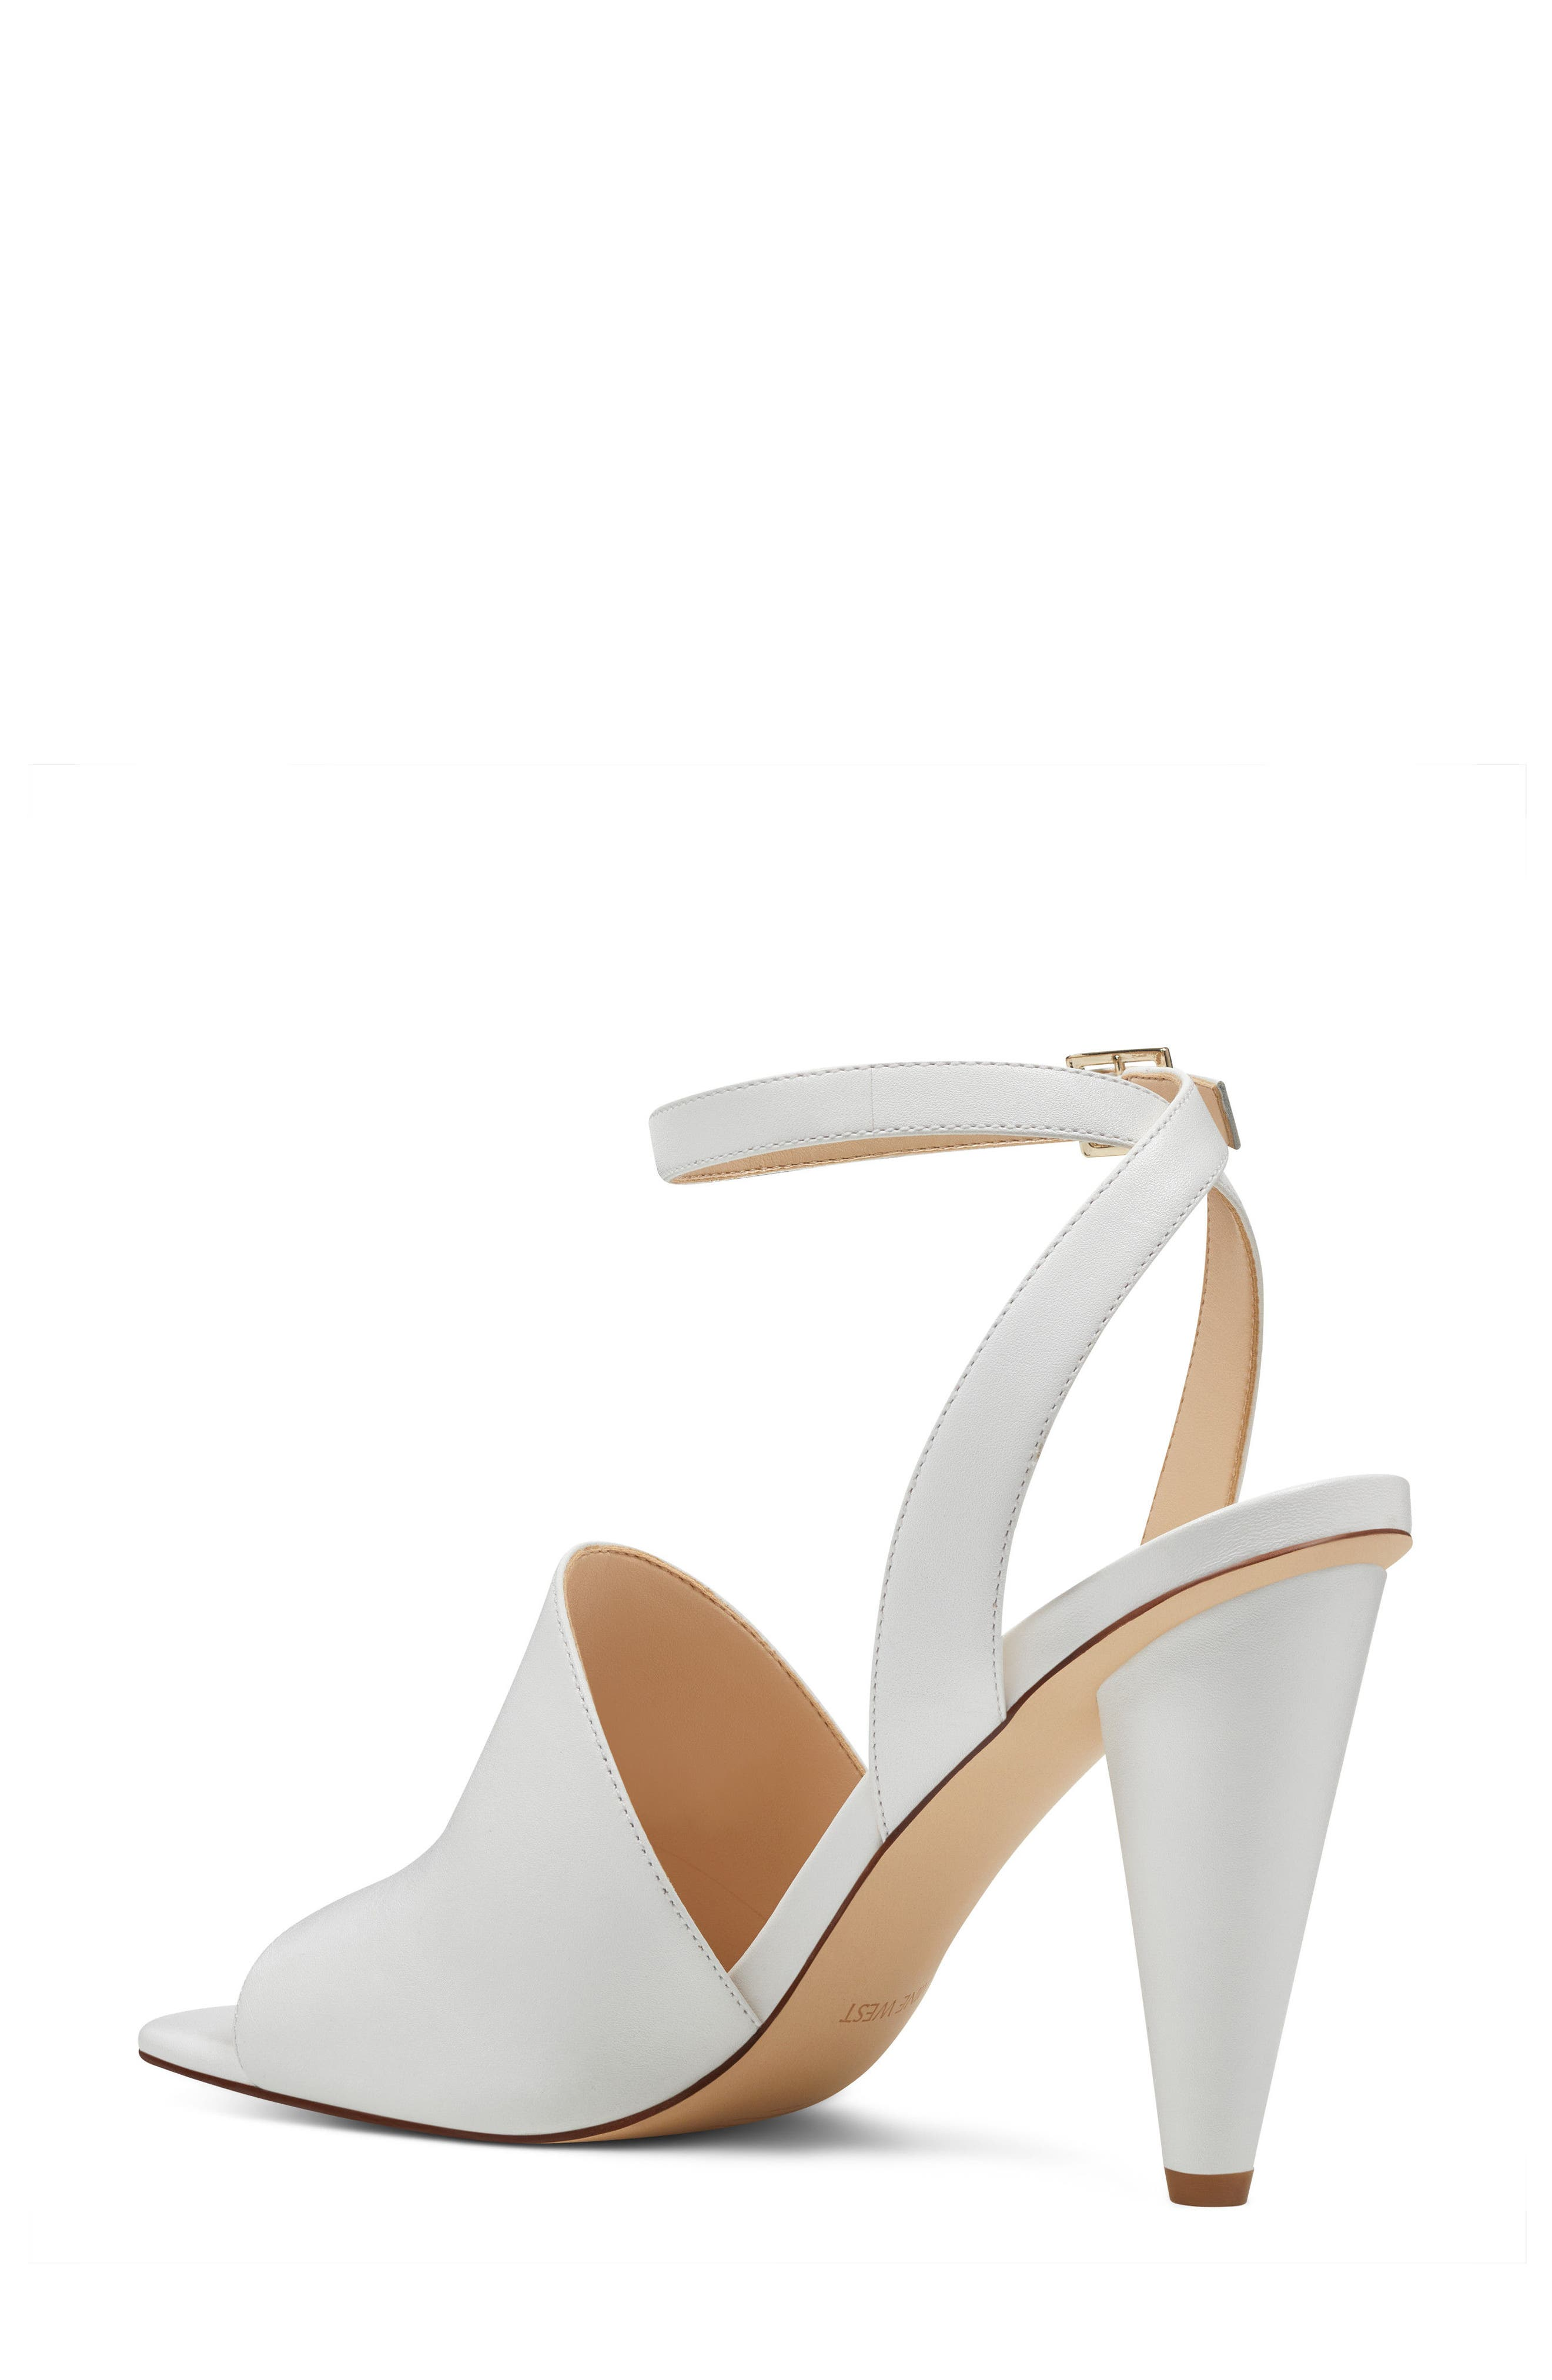 Quilty Ankle Strap Sandal,                             Alternate thumbnail 2, color,                             White Leather